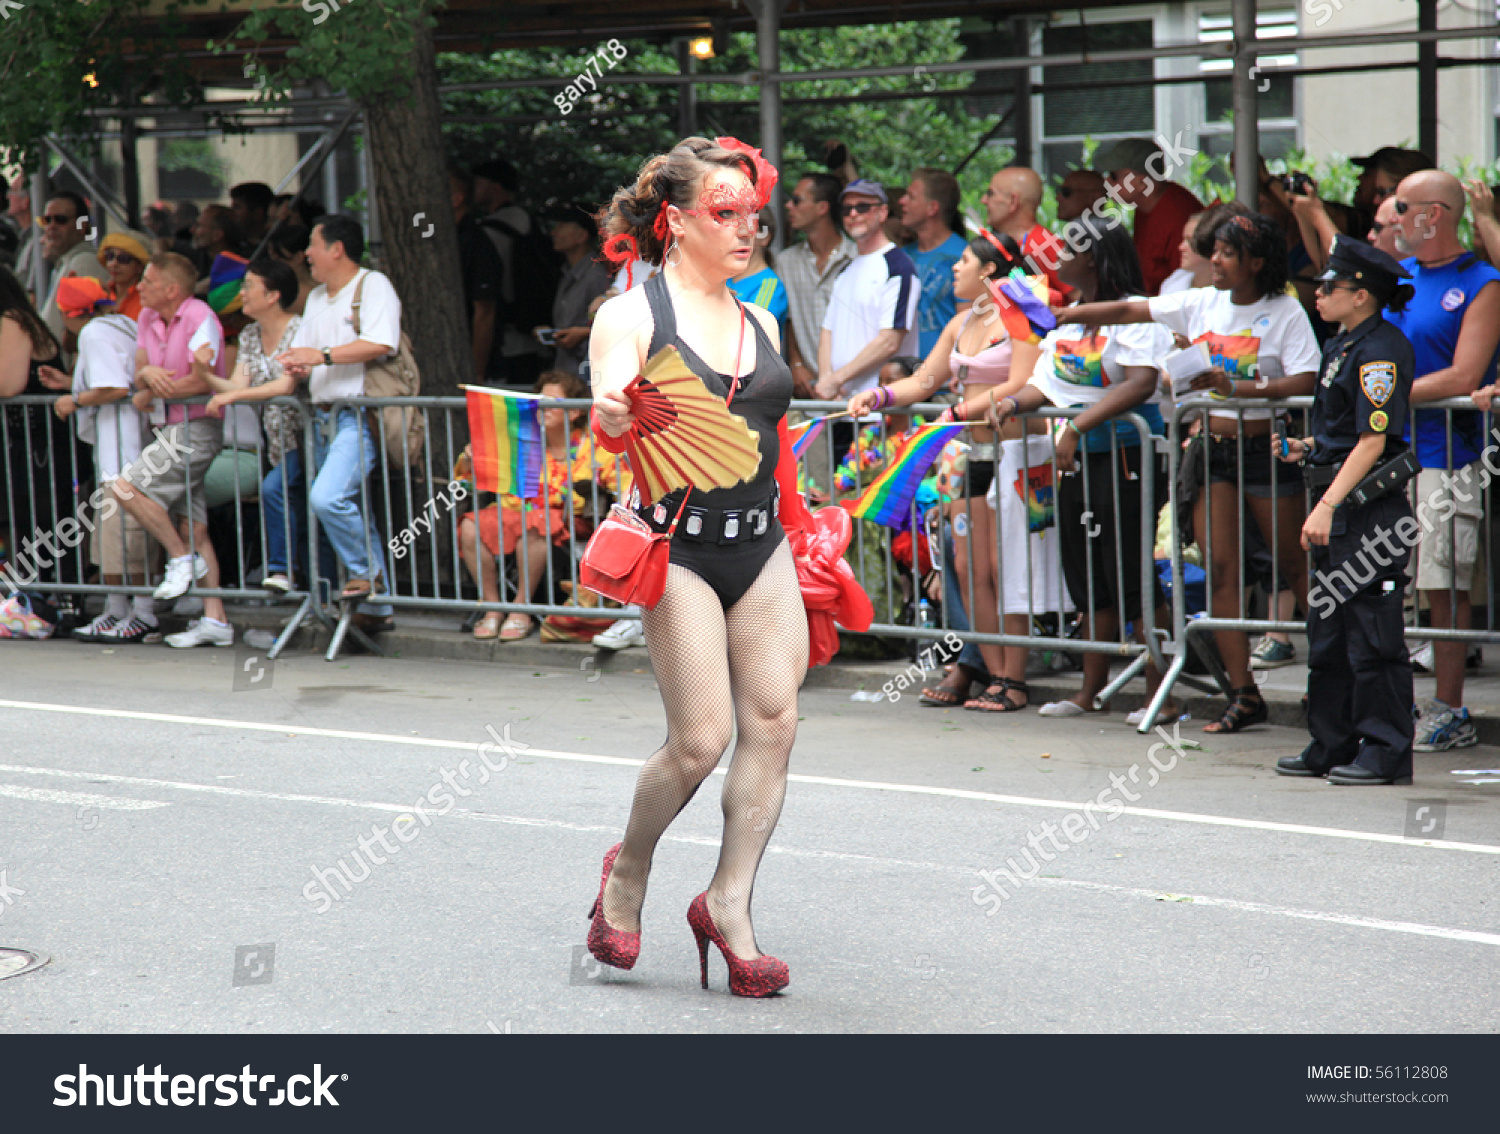 from Odin gay pride nyc june 2010